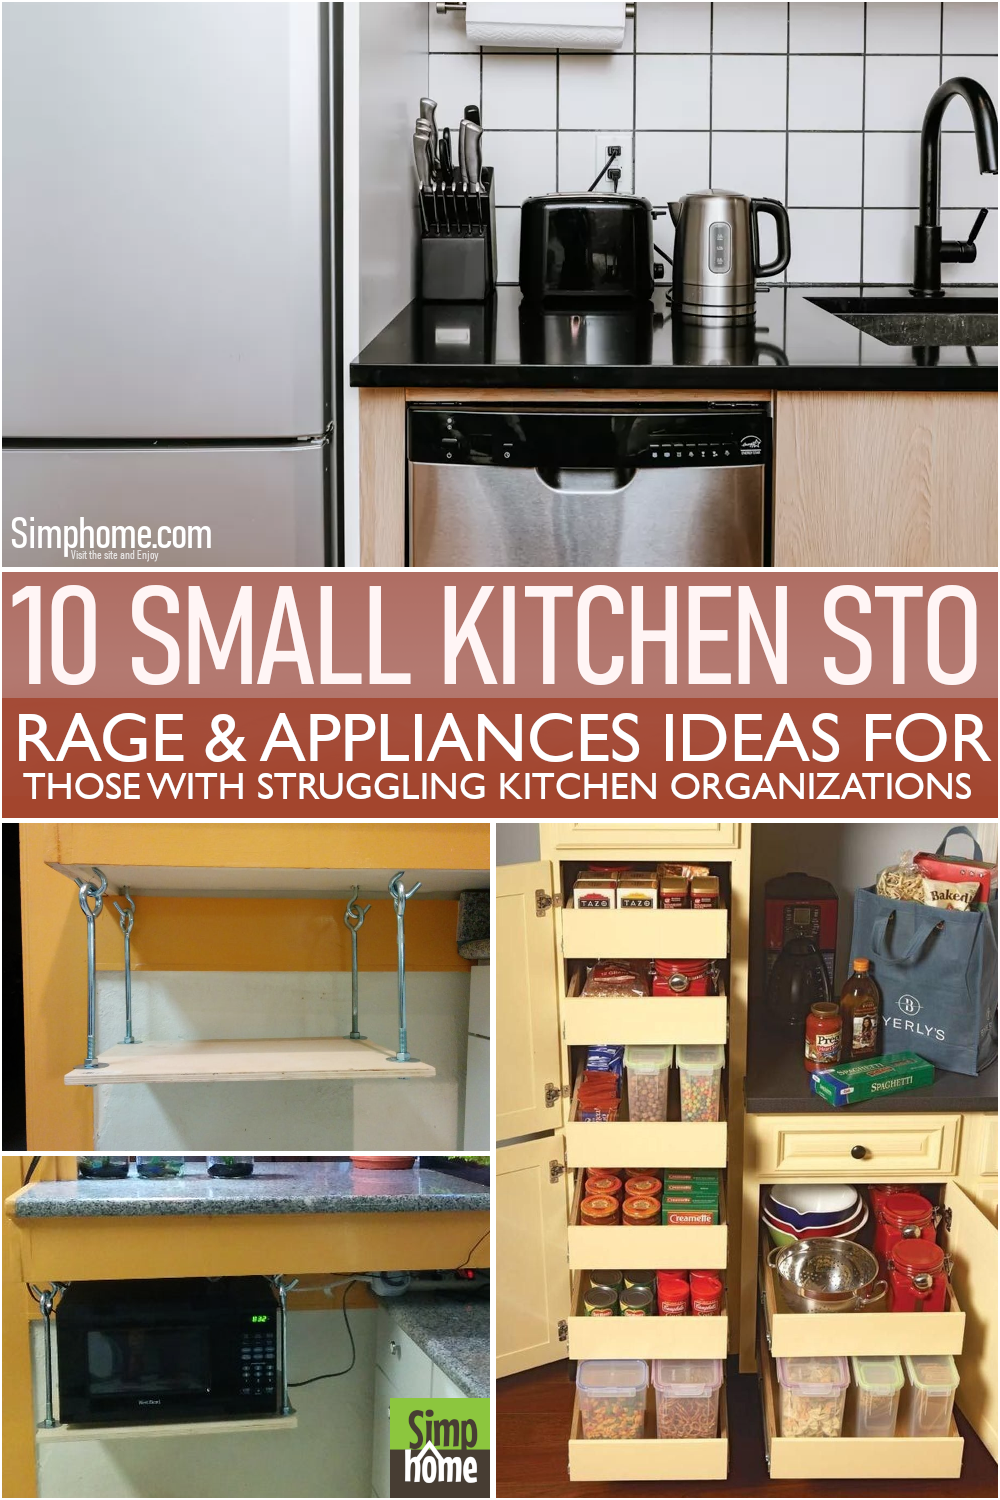 The 10 Small Kitchen Appliances Storage by Simphome